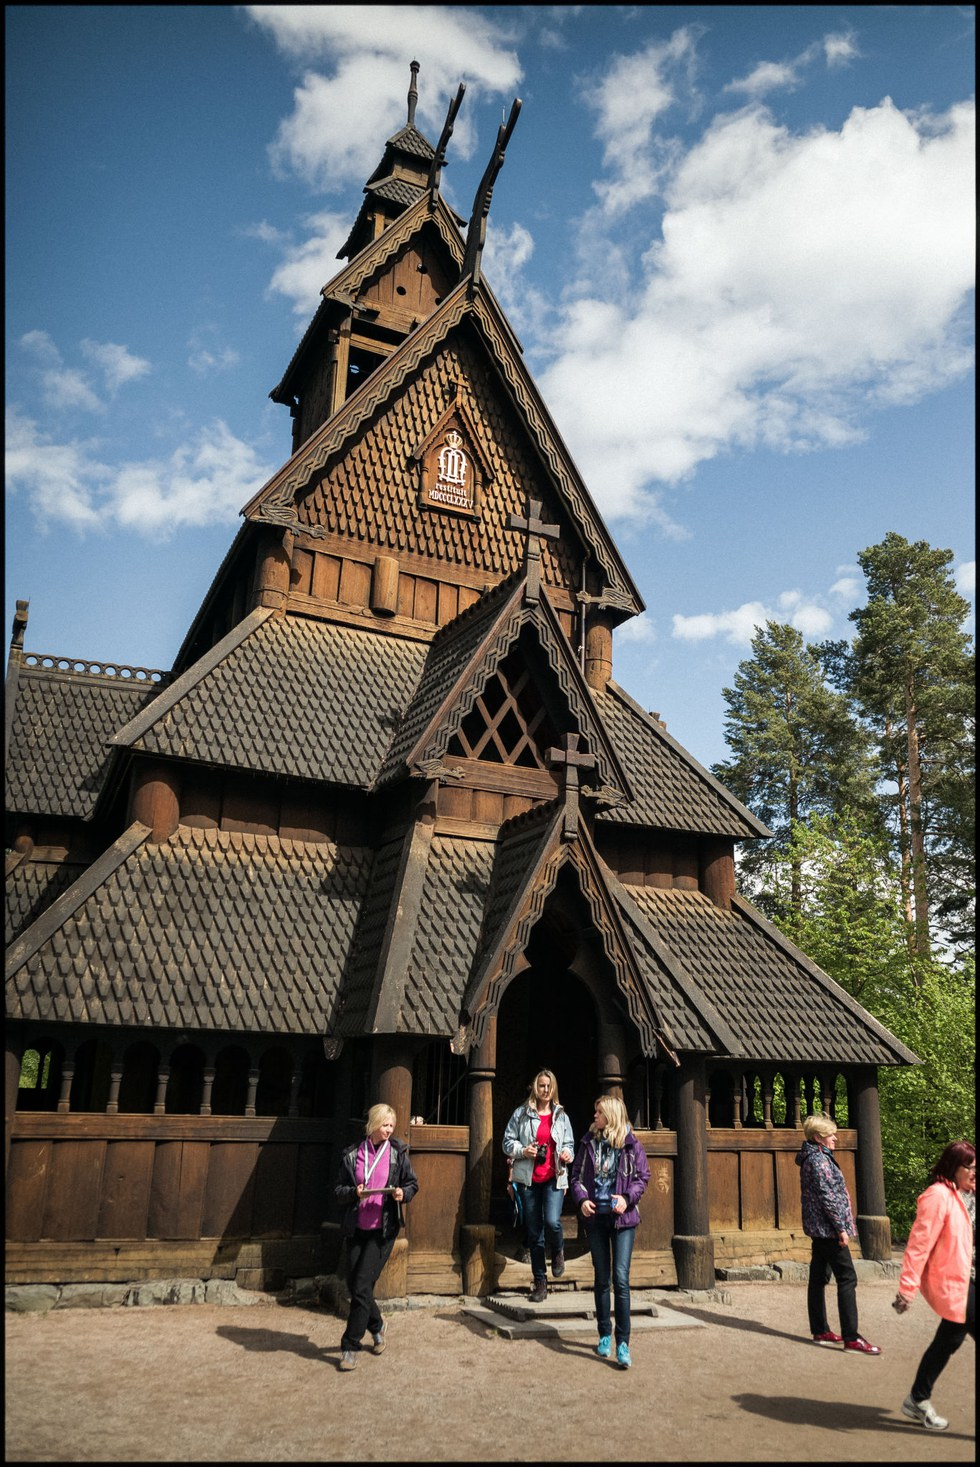 Built in 1200, the Norwegian Folk Museum's Gol Stave Church is littered with eerie carvings